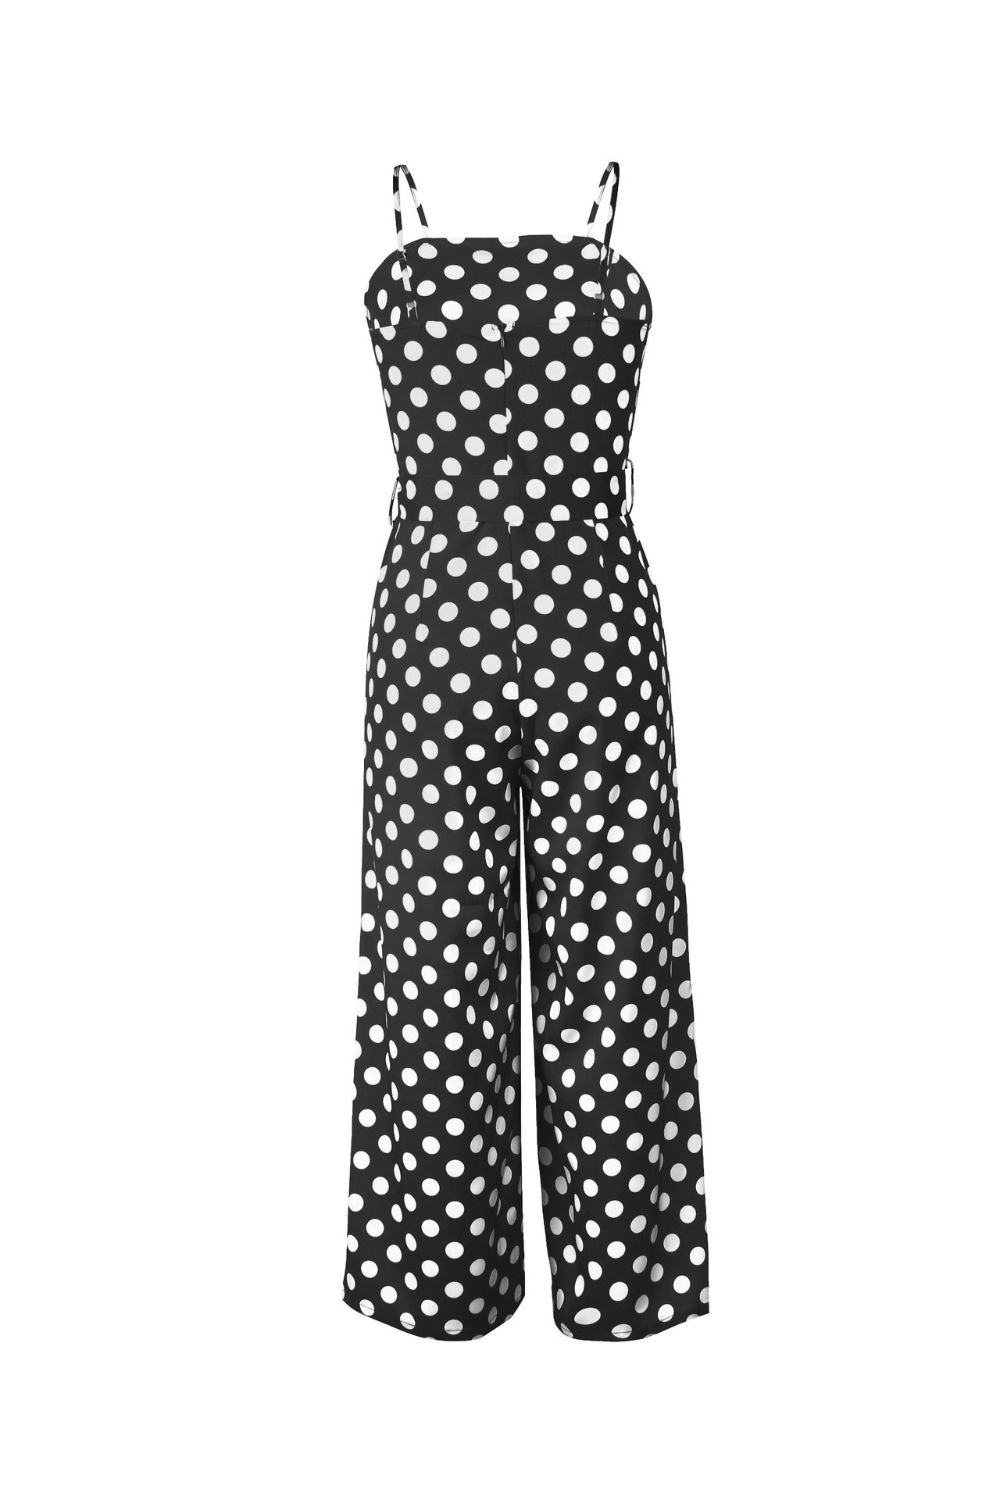 HTB1uscCbcfrK1RkSmLyq6xGApXaH - Women Rompers summer long pants elegant strap woman jumpsuits polka dot plus size jumpsuit off shoulder overalls for womens